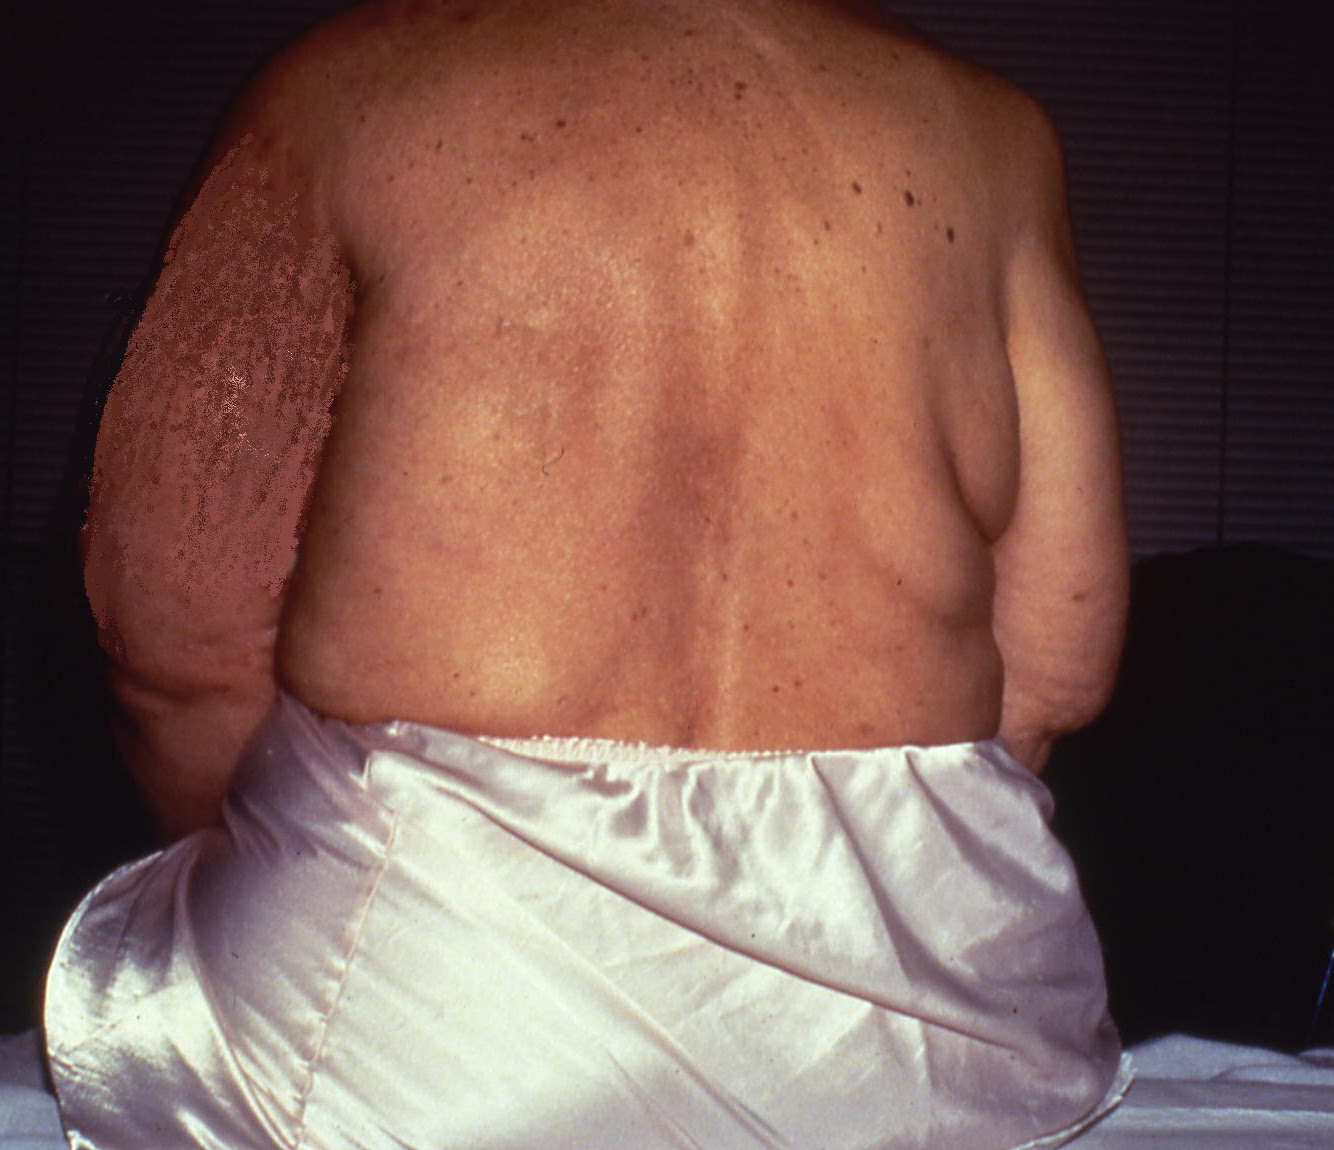 Lymphedema Affecting The Breast And Trunk Lymphedema Blog